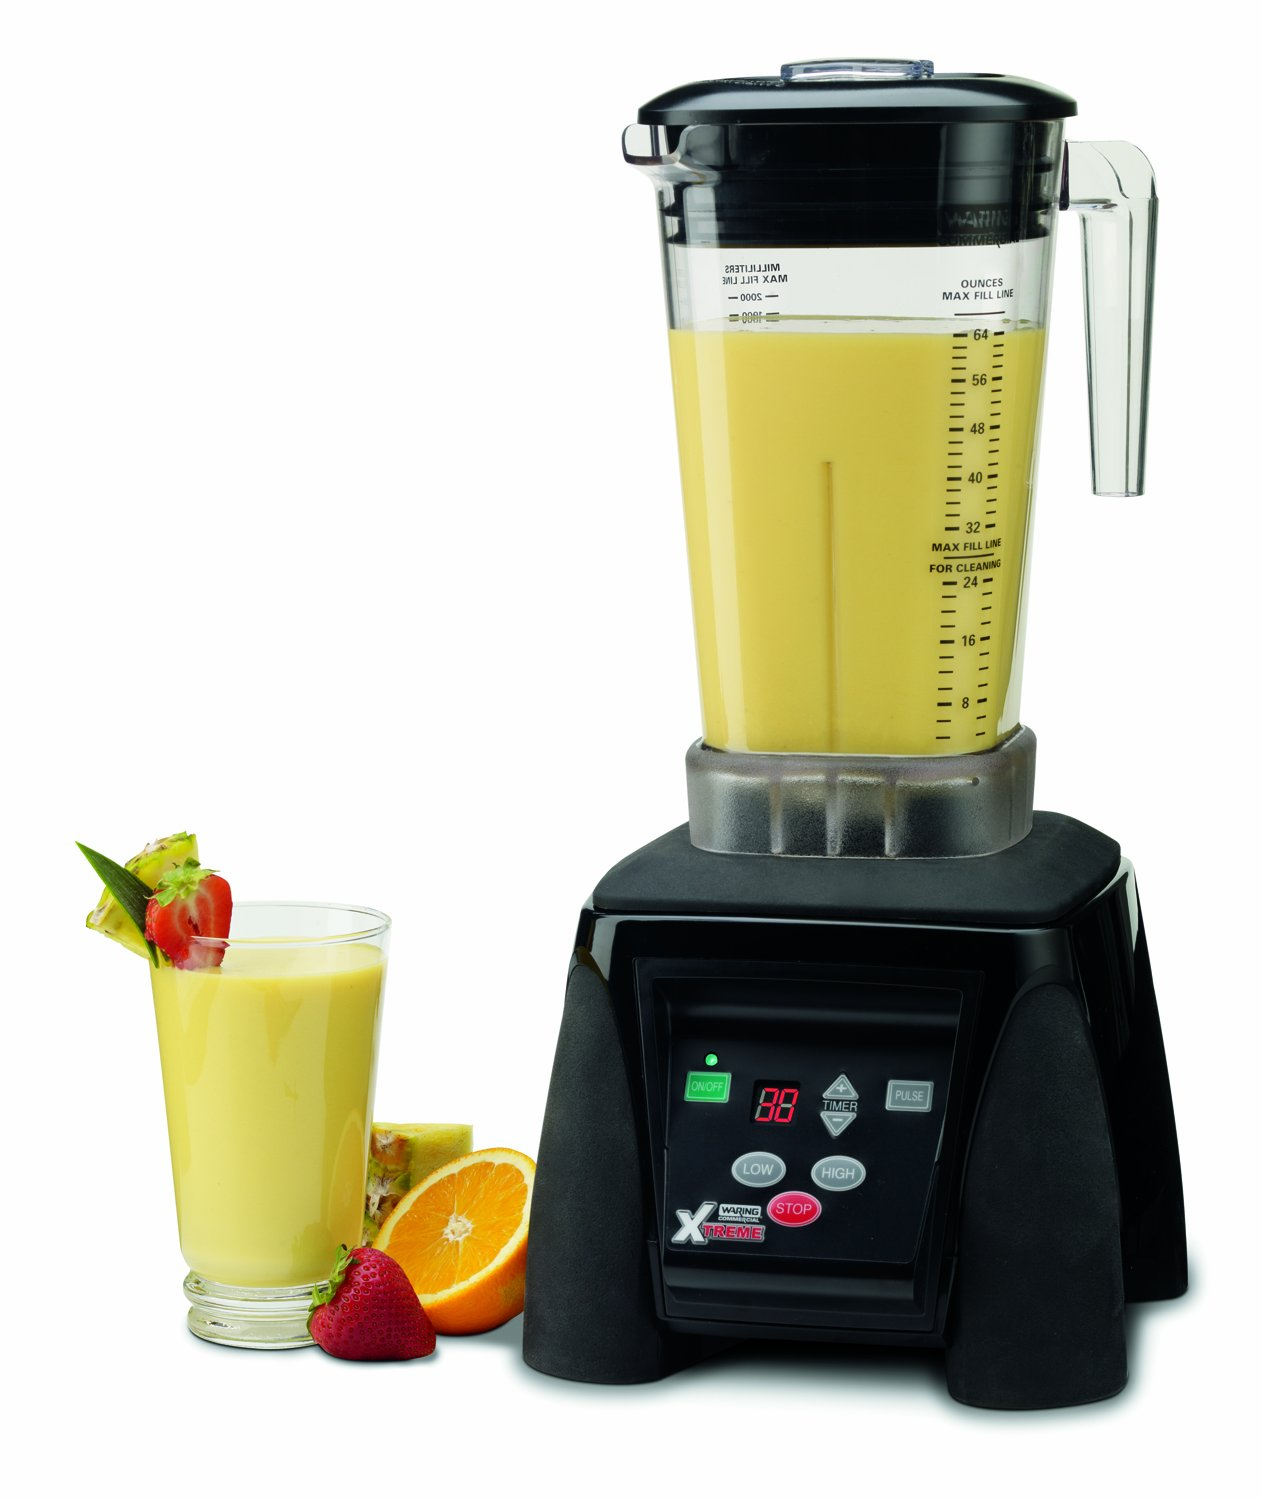 64-Ounce Waring Commercial Inc. Waring Commercial MX1100XTX Hi-Power Electronic Keypad Blender with Timer and The Raptor Copolyester Container Kitchen